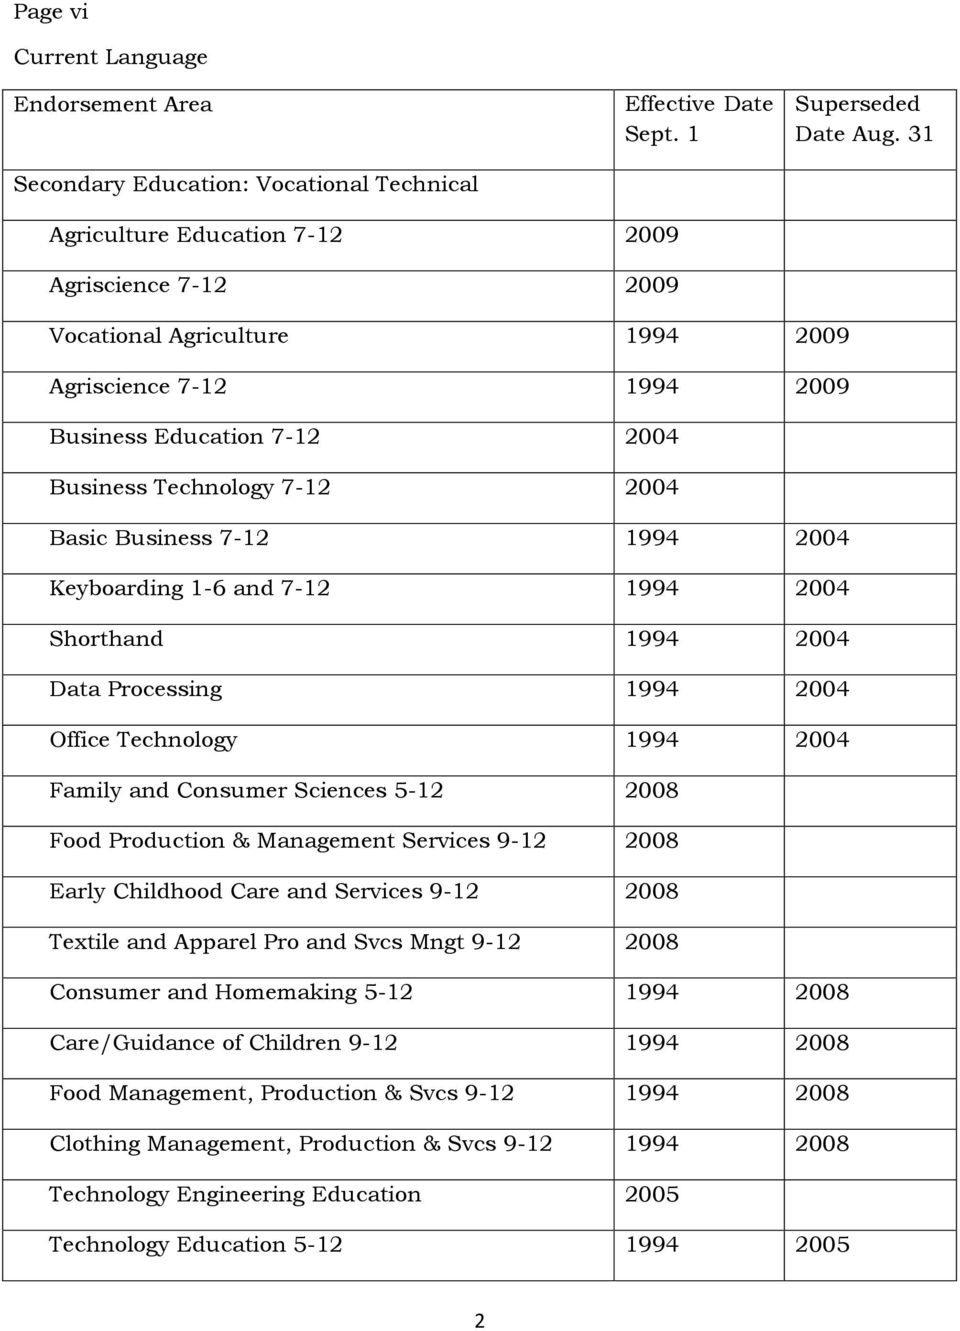 1994 2004 Keyboarding 1-6 and 7-12 1994 2004 Shorthand 1994 2004 Data Processing 1994 2004 Office Technology 1994 2004 Family and Consumer Sciences 5-12 2008 Food Production & Management Services